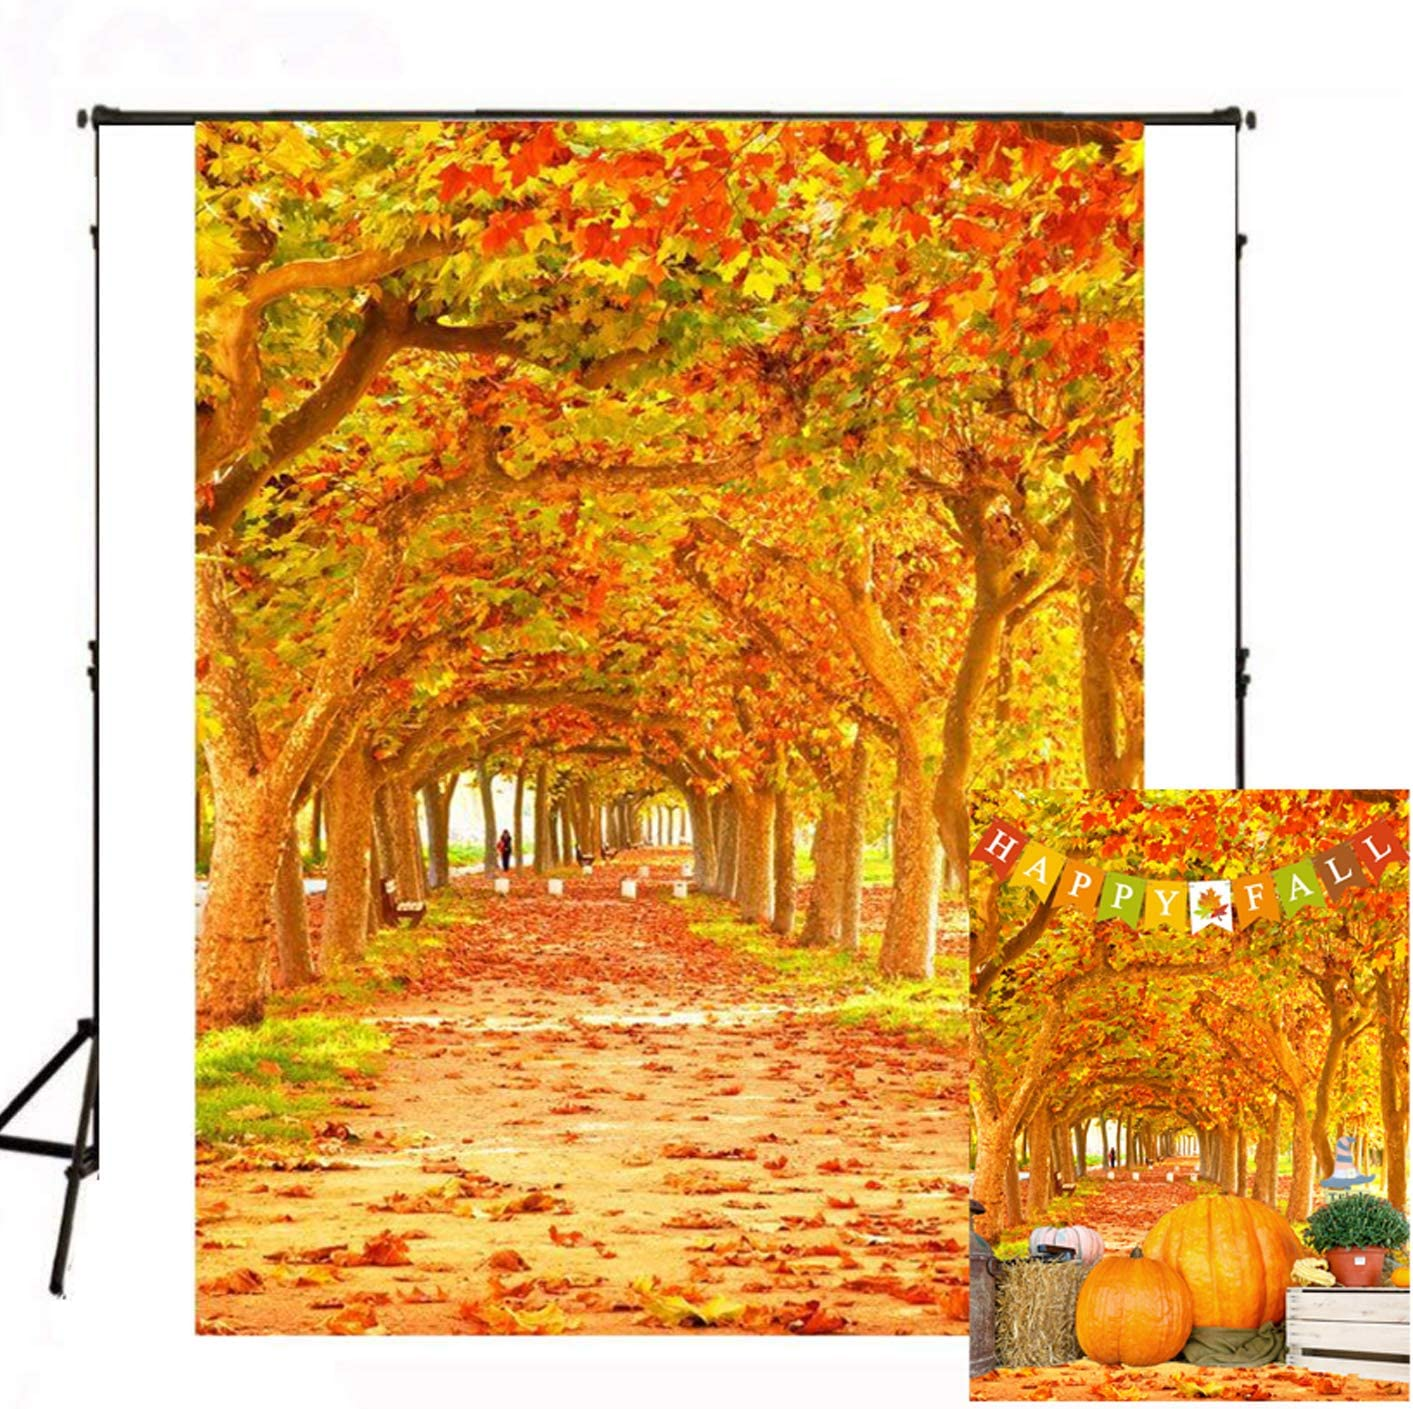 Phoenix Tree Backdrop Autumn Scenery Romantic Road Landscape Covered by Falling Leaves Photography Backdrop Orange Color 5x7ft BT022